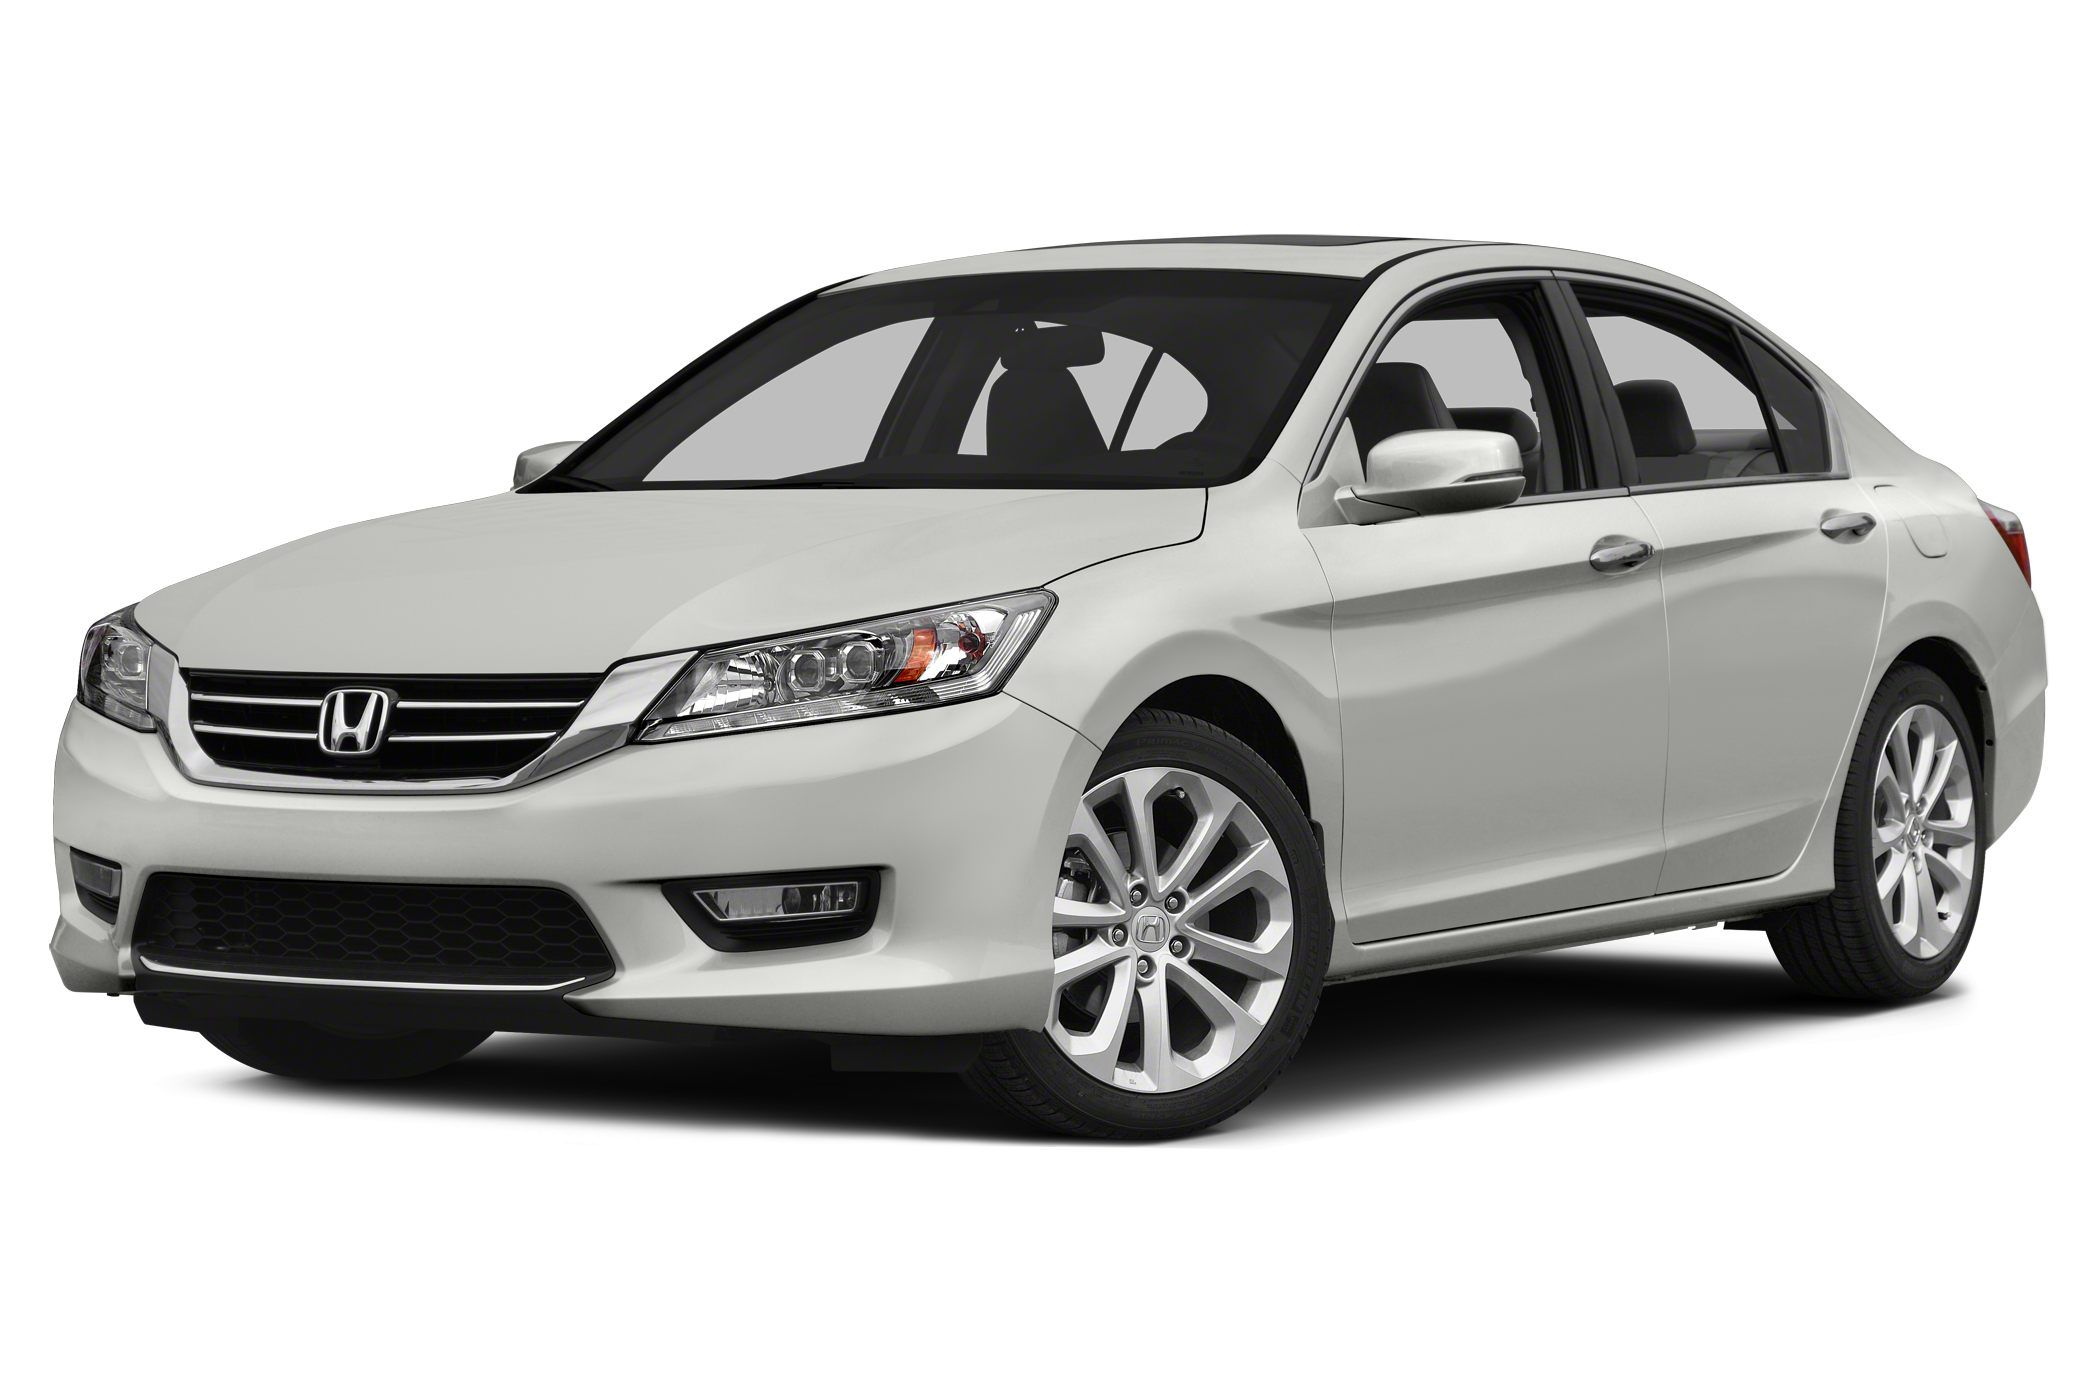 2015 honda accord Front Angle High Definition Wallpaper